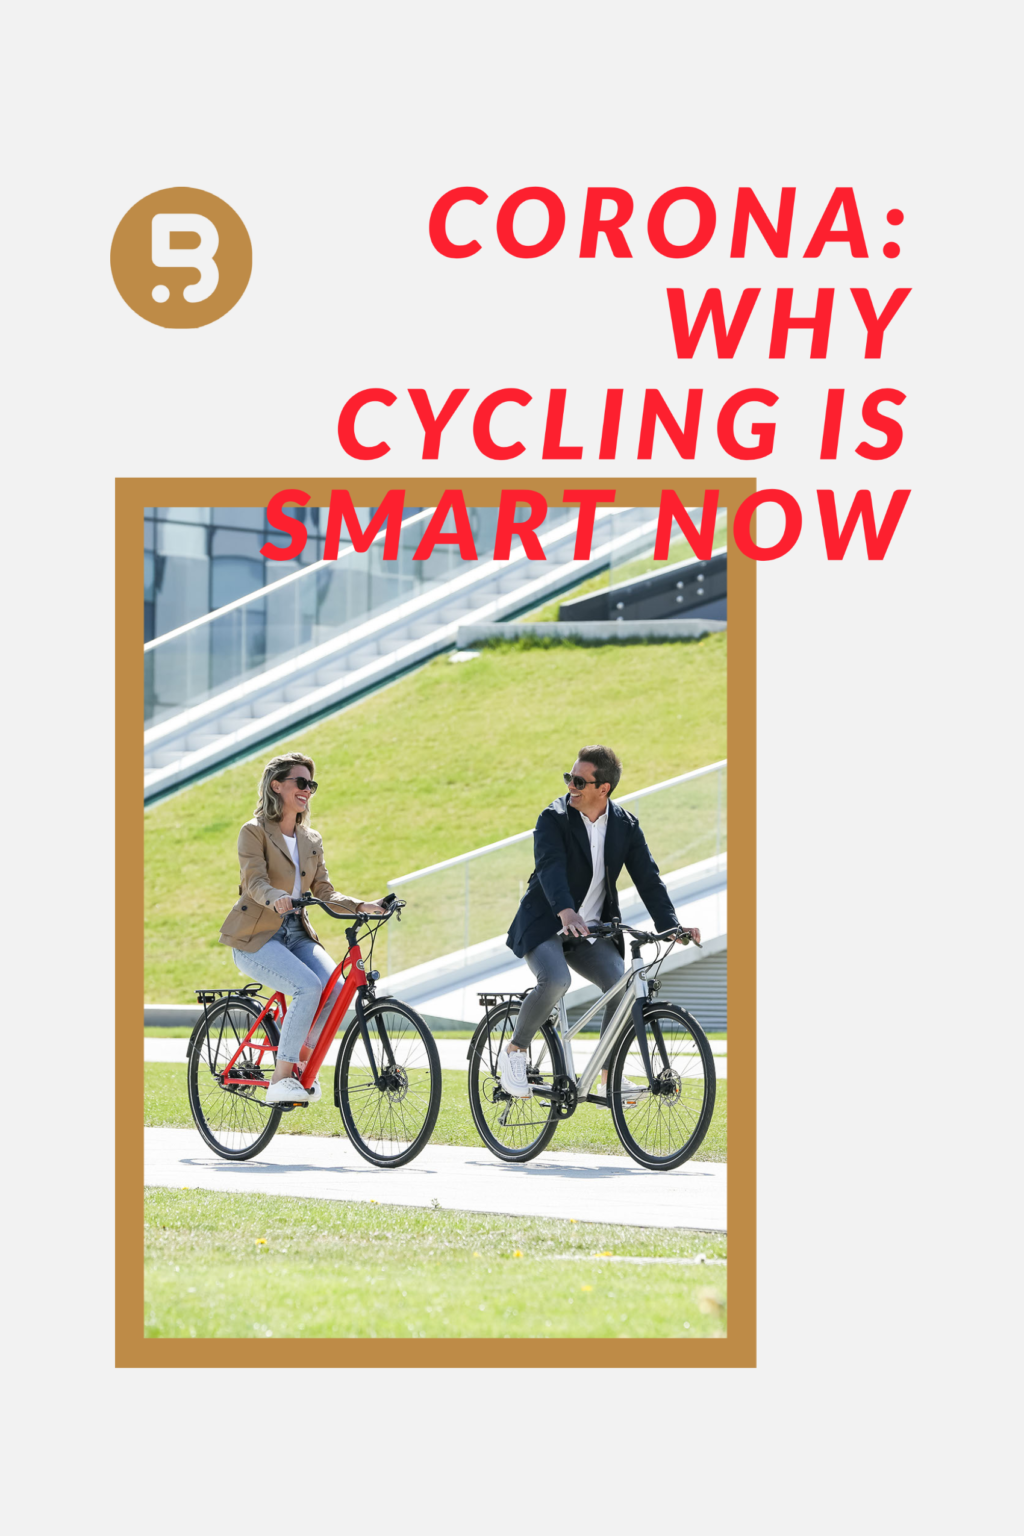 Corona: Why cycling is smart right now.